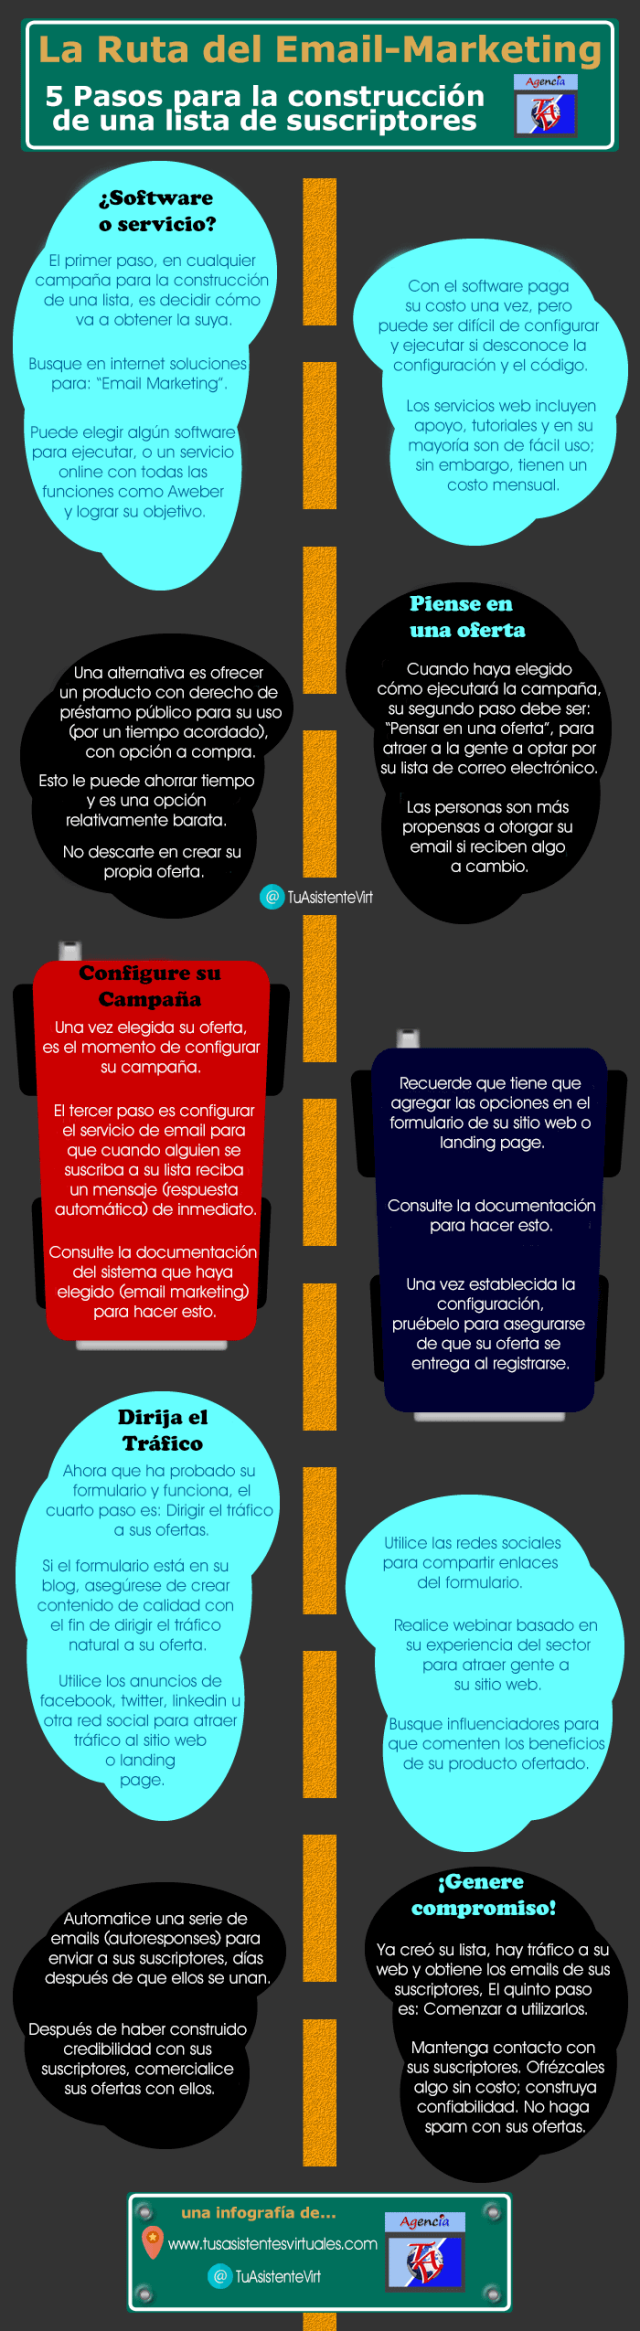 La ruta del email marketing #infografia #infographic #marketing